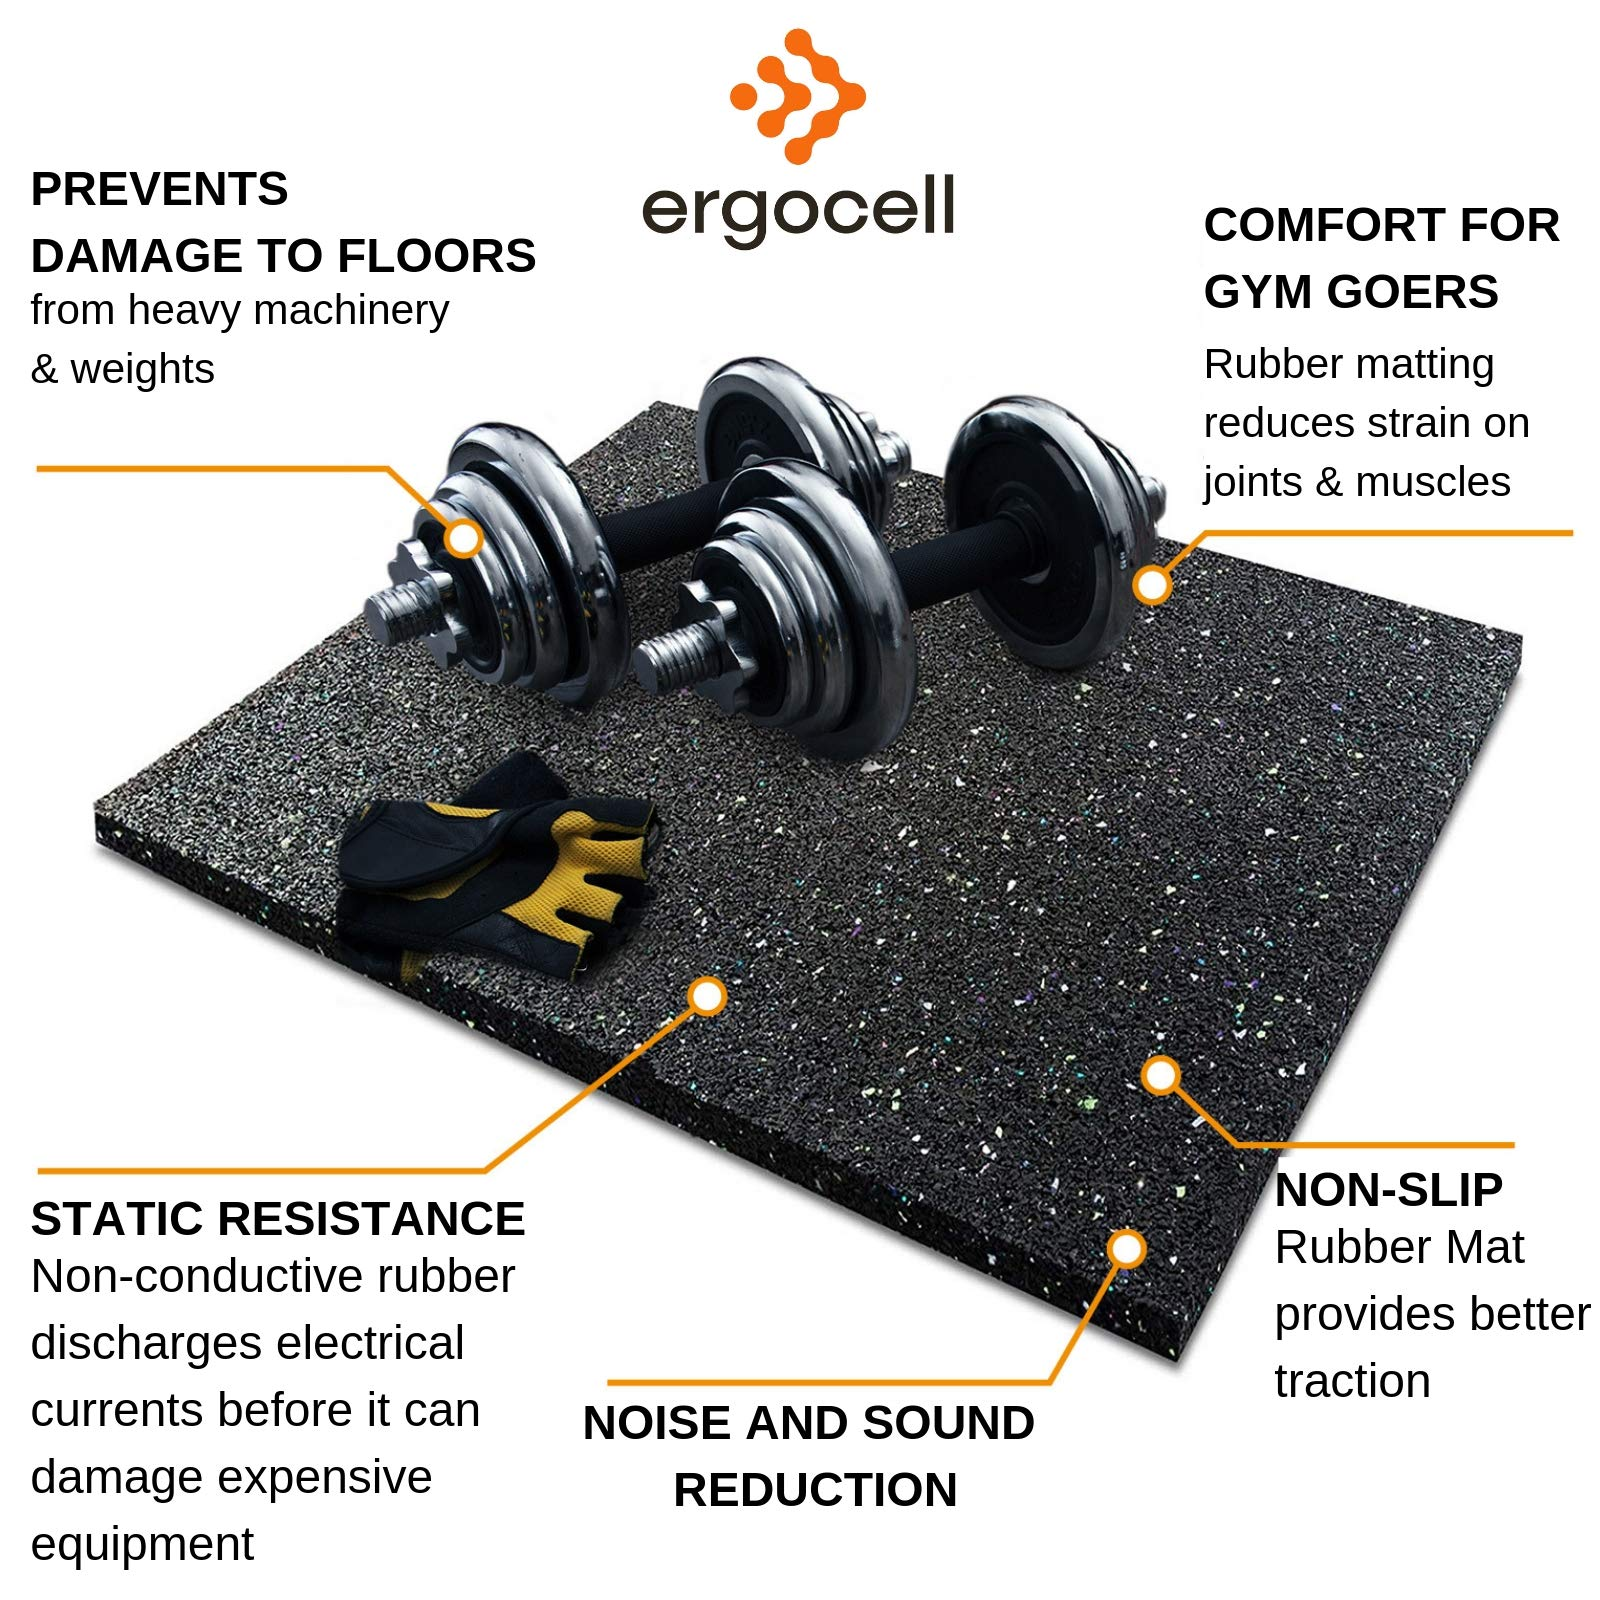 Ergocell Recycled Rubber Floor Mat – Shock Absorbent Gym Mat Flooring & Horse Stall Mat | Three Thicknesses, Multiple Sizes | 3/8'' - 2' x 2' by Ergocell (Image #7)